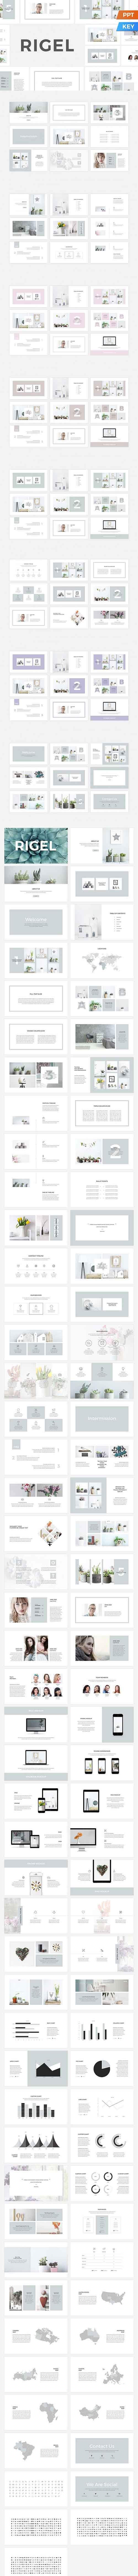 CreativeMarket - Rigel Presentation Template